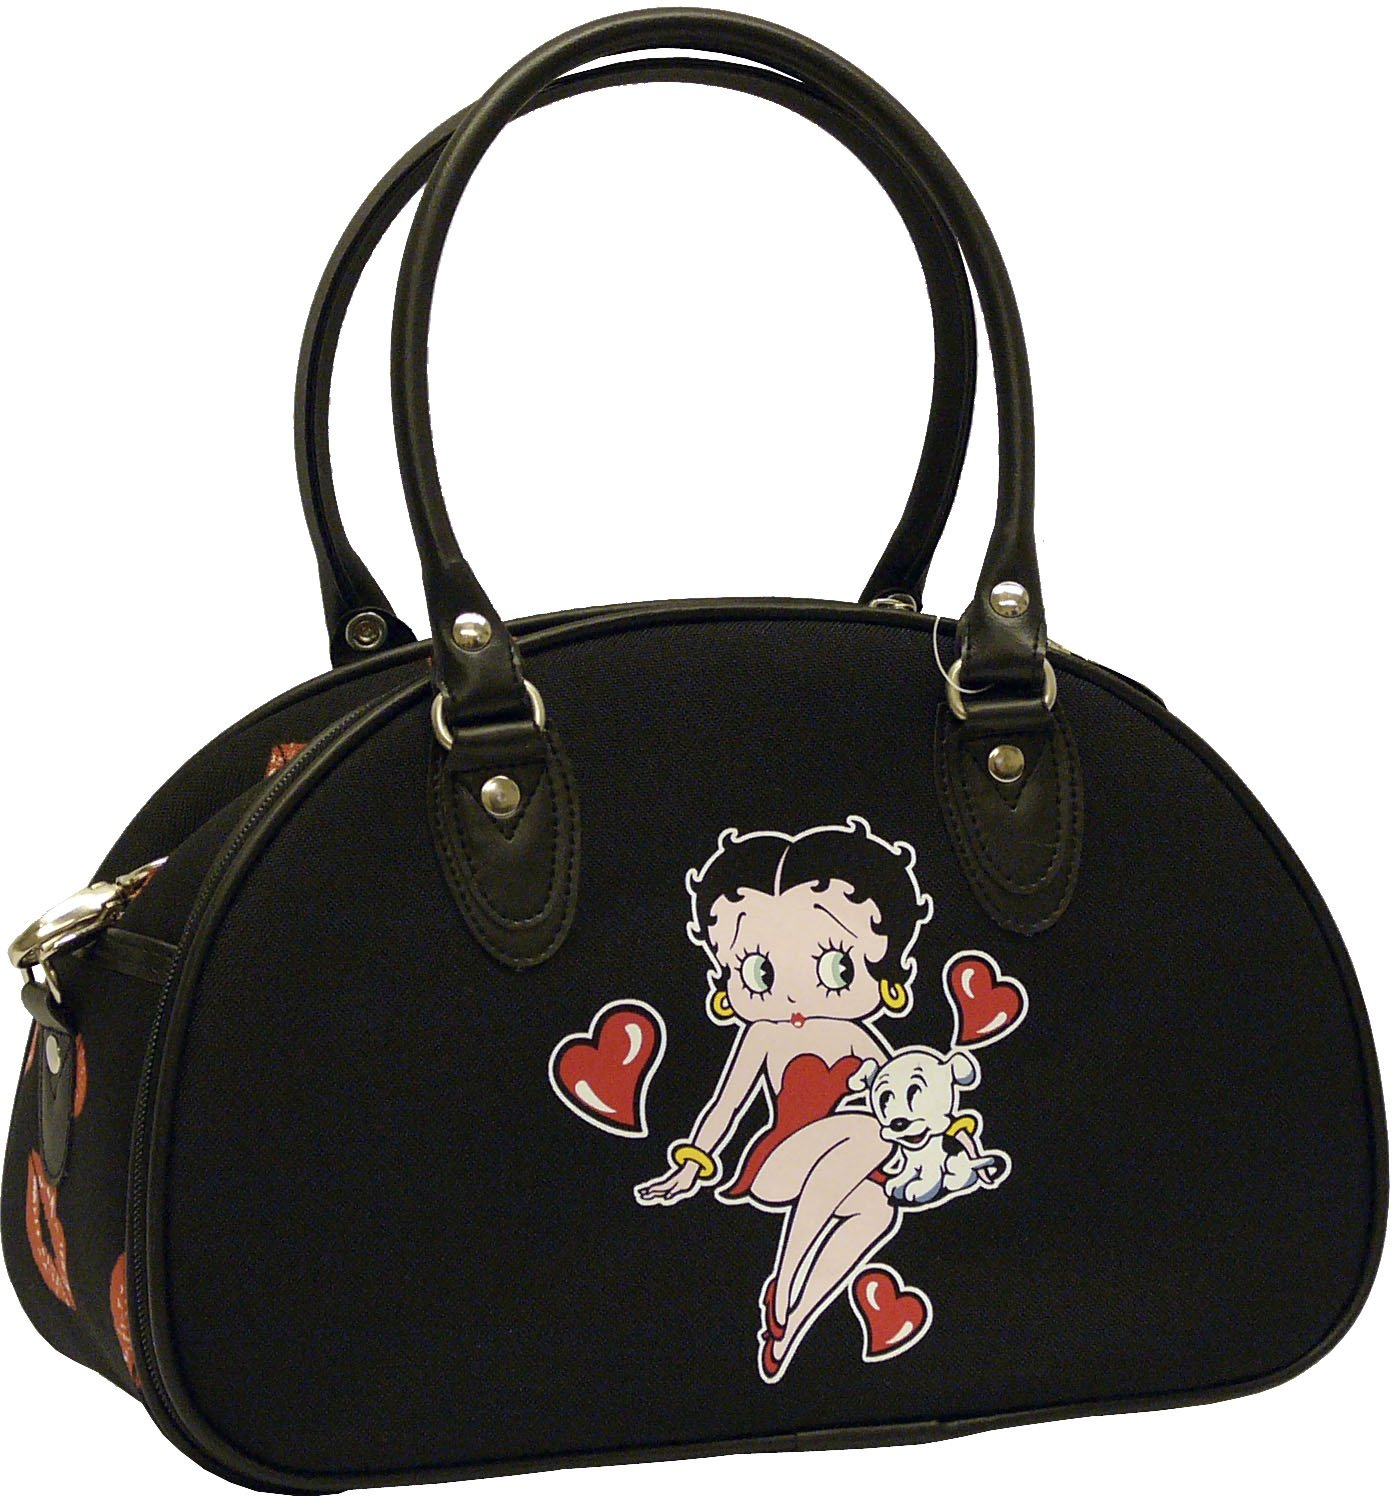 Betty Boops Black Carry On Bag - 13""